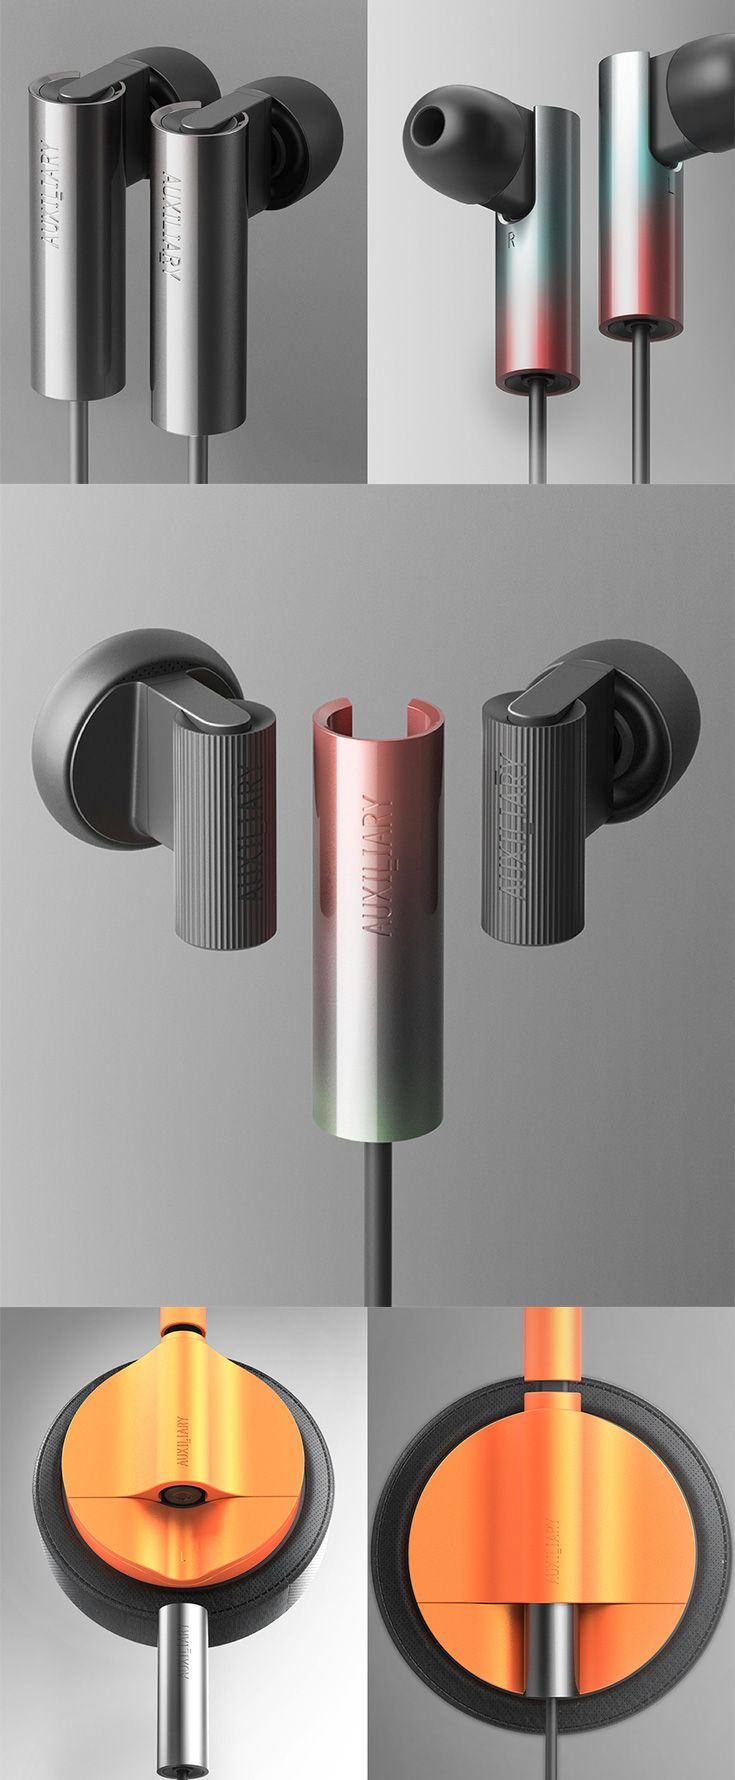 The 'Auxiliary project' aims at making earphones modular in the aspect that it allows you to flip/switch/change cables when you want or need to, since the most vulnerable part of any portable audio device is the cable... READ MORE at Yanko Design !